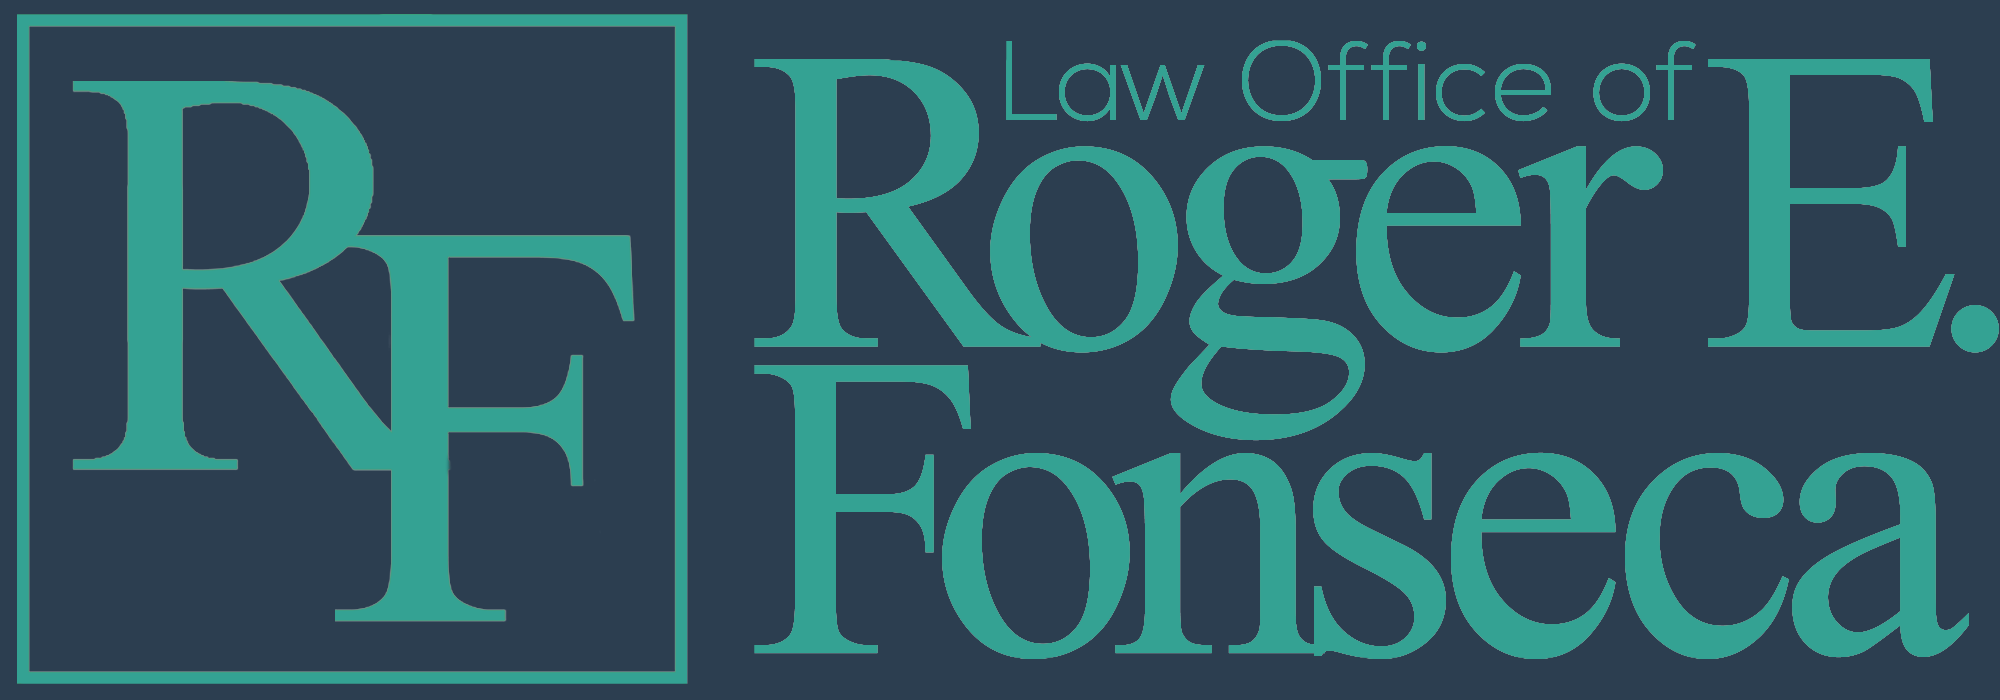 Law Office of Roger E. Fonseca